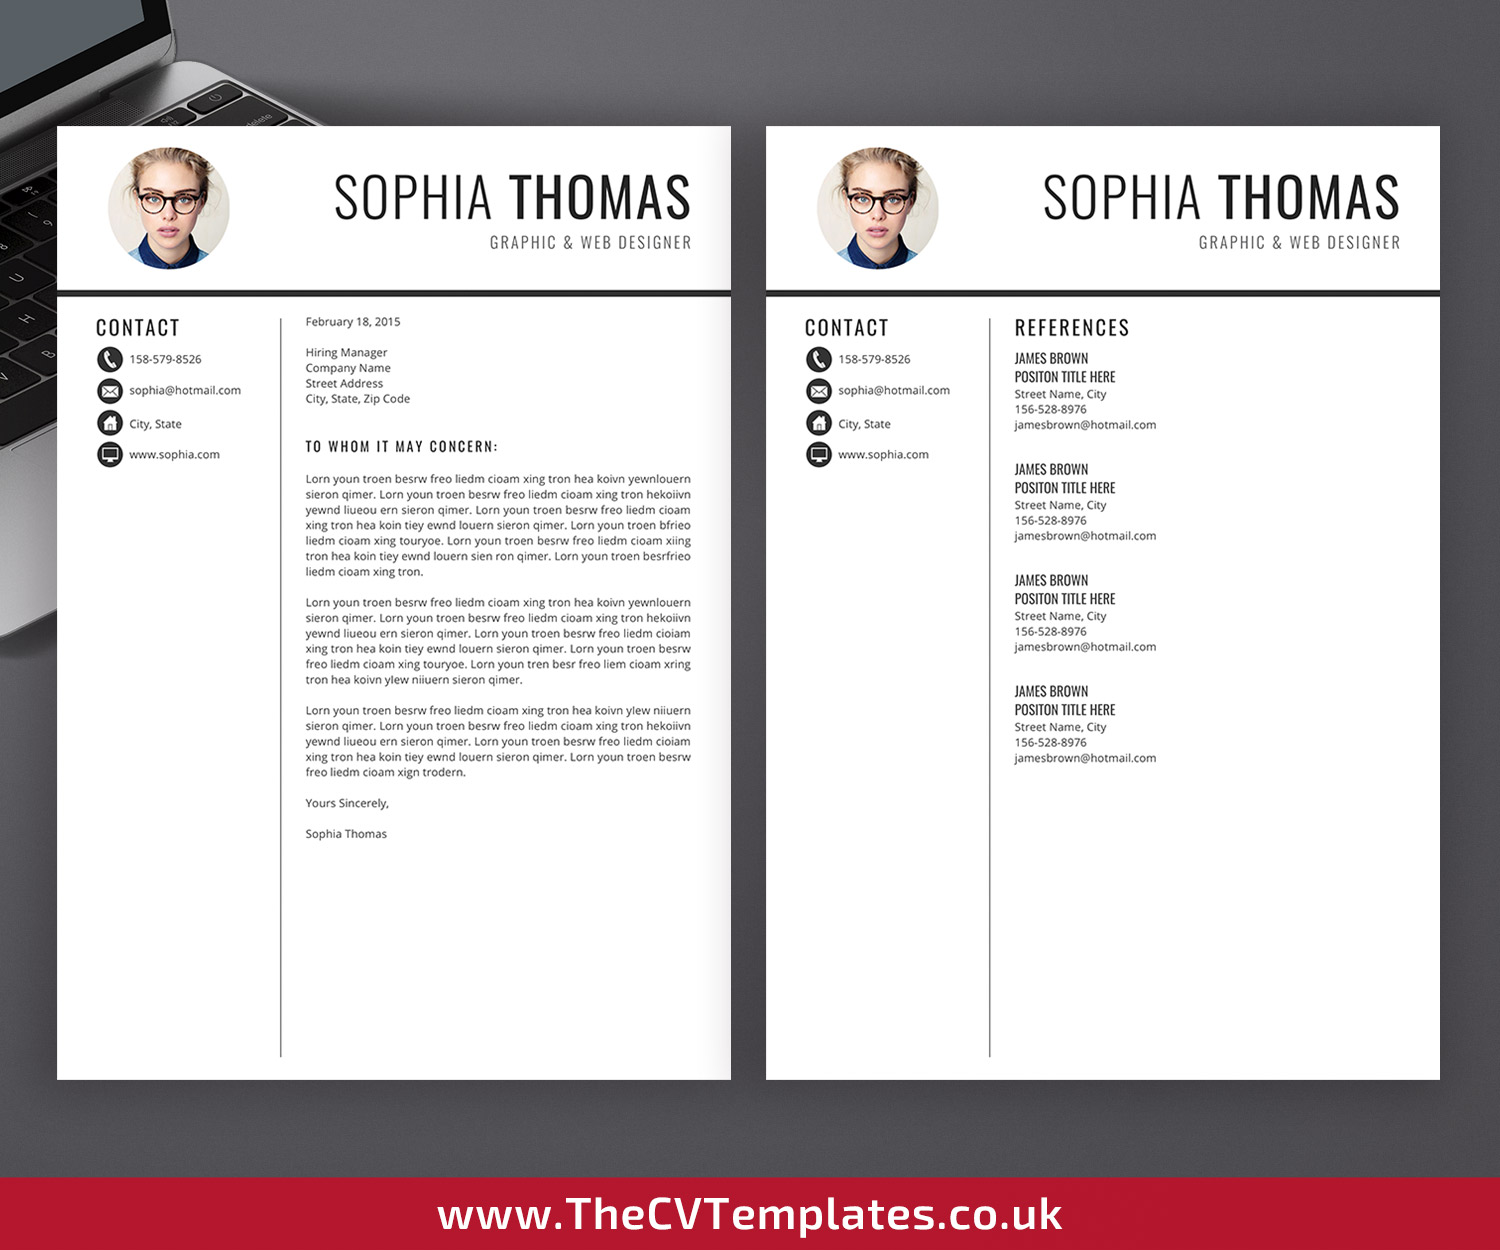 Professional Cv Template Cover Letter Curriculum Vitae Microsoft Word Resume Design Minimalist Resume Modern Resume Creative Resume Student Resume 1 2 3 Page Resume Instant Download Thecvtemplates Co Uk